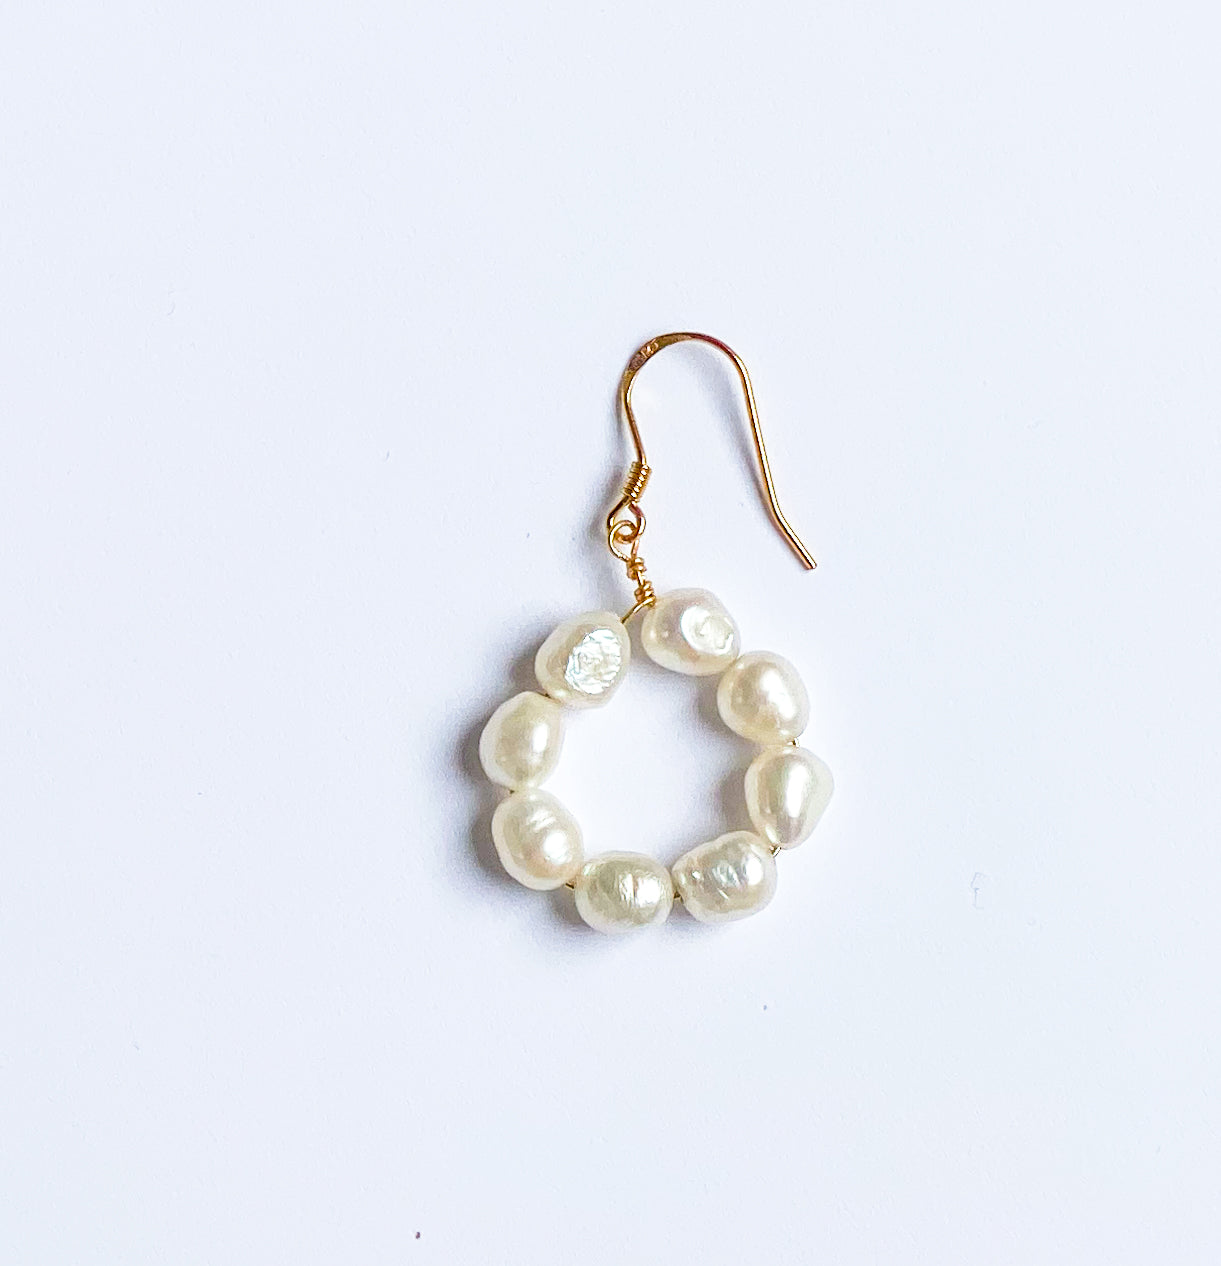 Filigree dangle earrings with freshwater pearls, arranged in a ring.